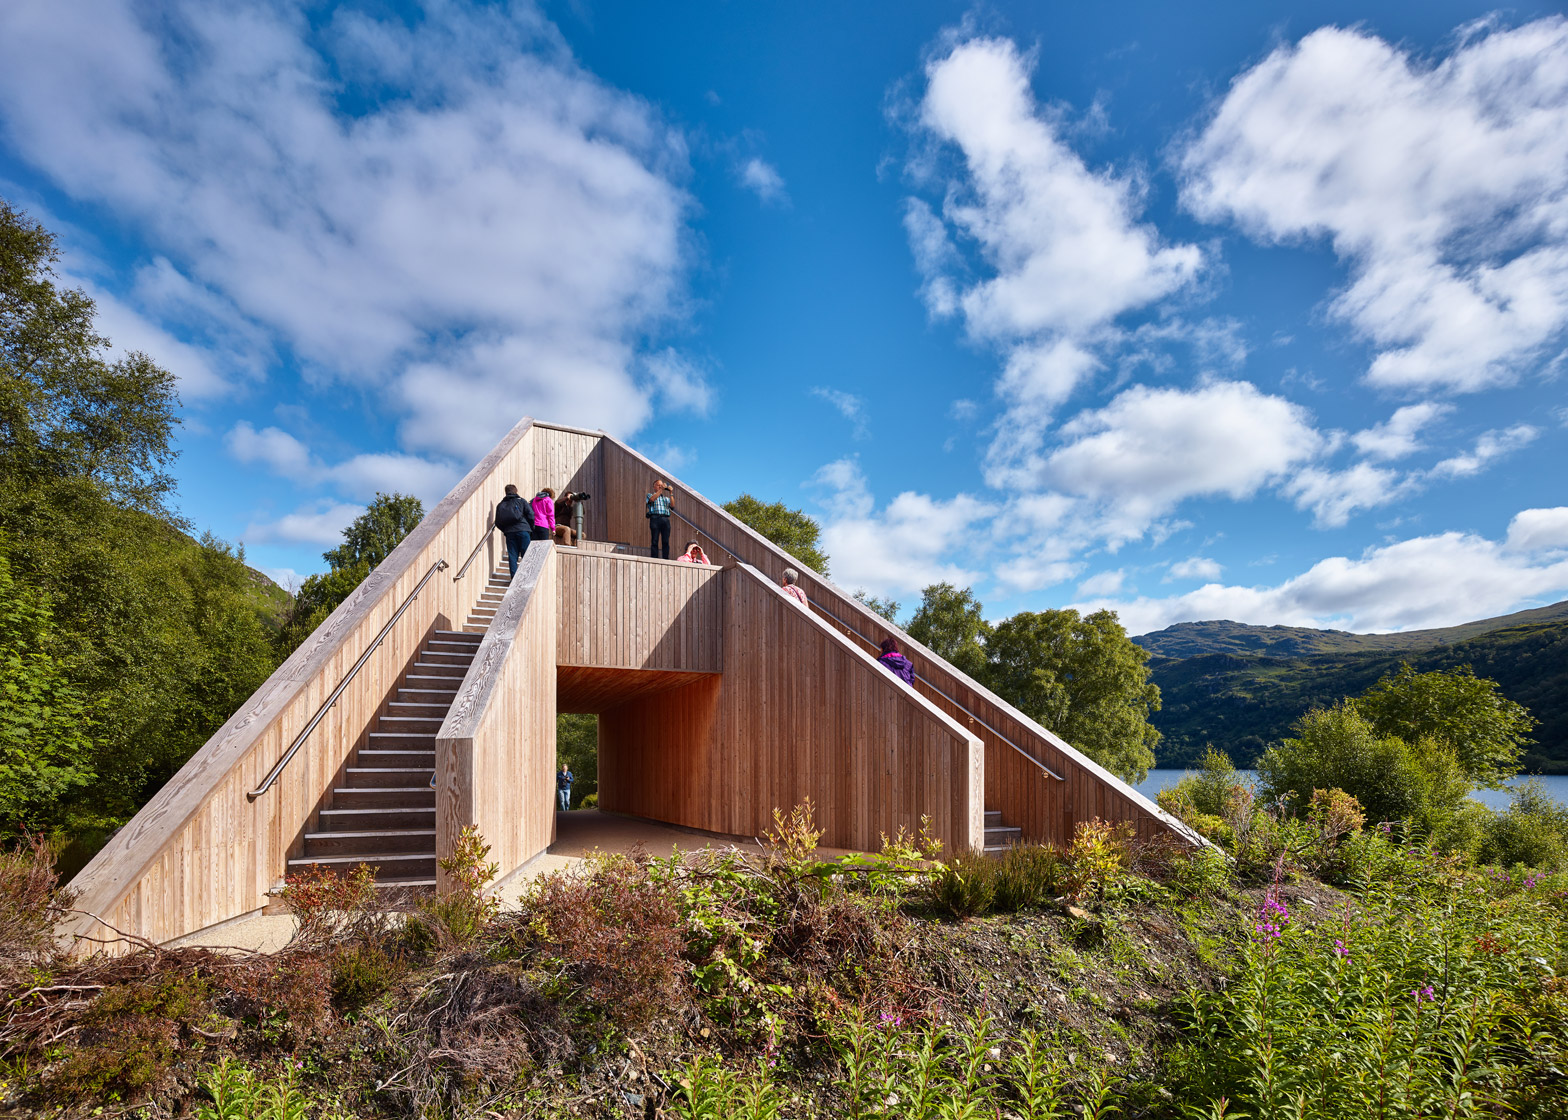 The Pyramid viewpoint by BTE Architecture